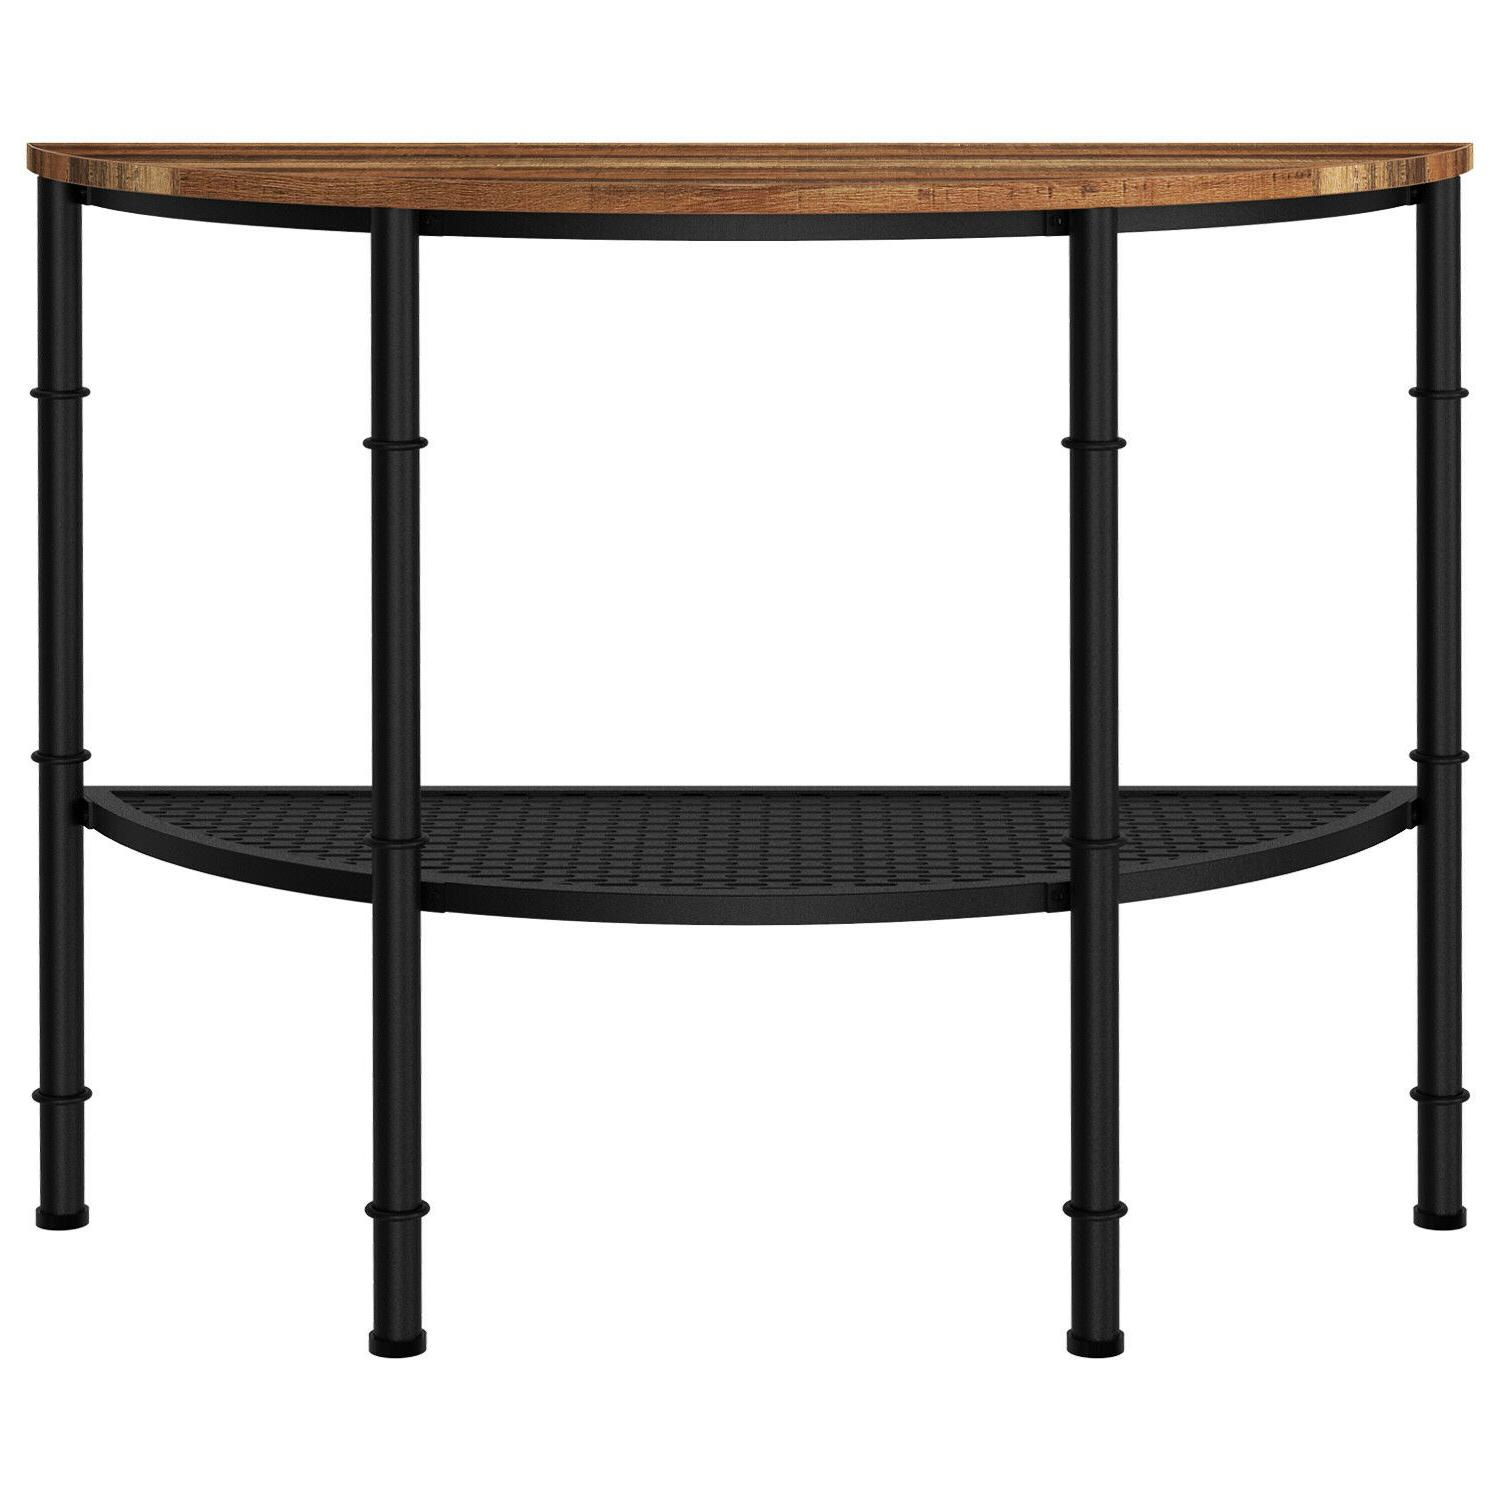 IRONCK Table Shelf, Half Moon